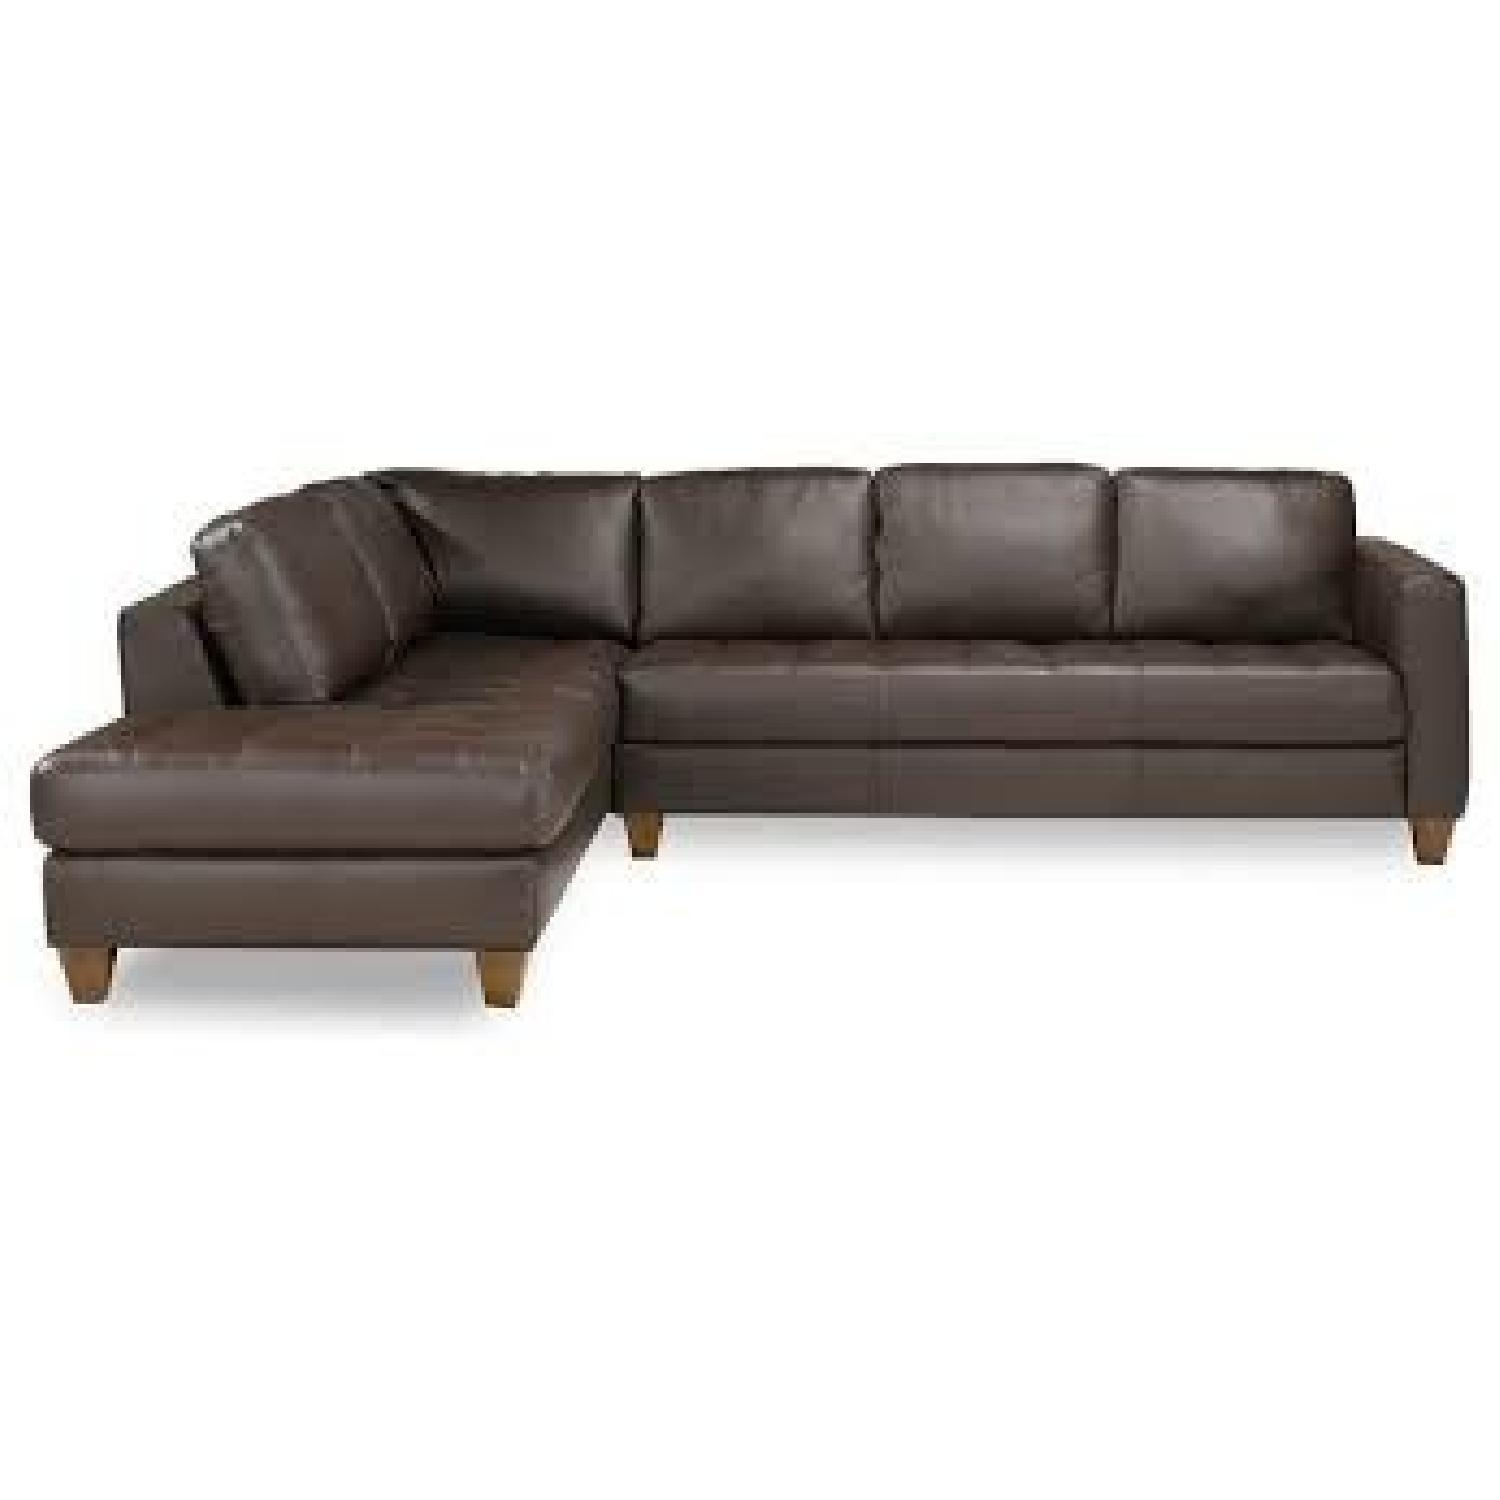 Macy's Milano Brown Leather Sectional Sofa – Aptdeco Within Macys Leather Sofas Sectionals (Image 6 of 20)